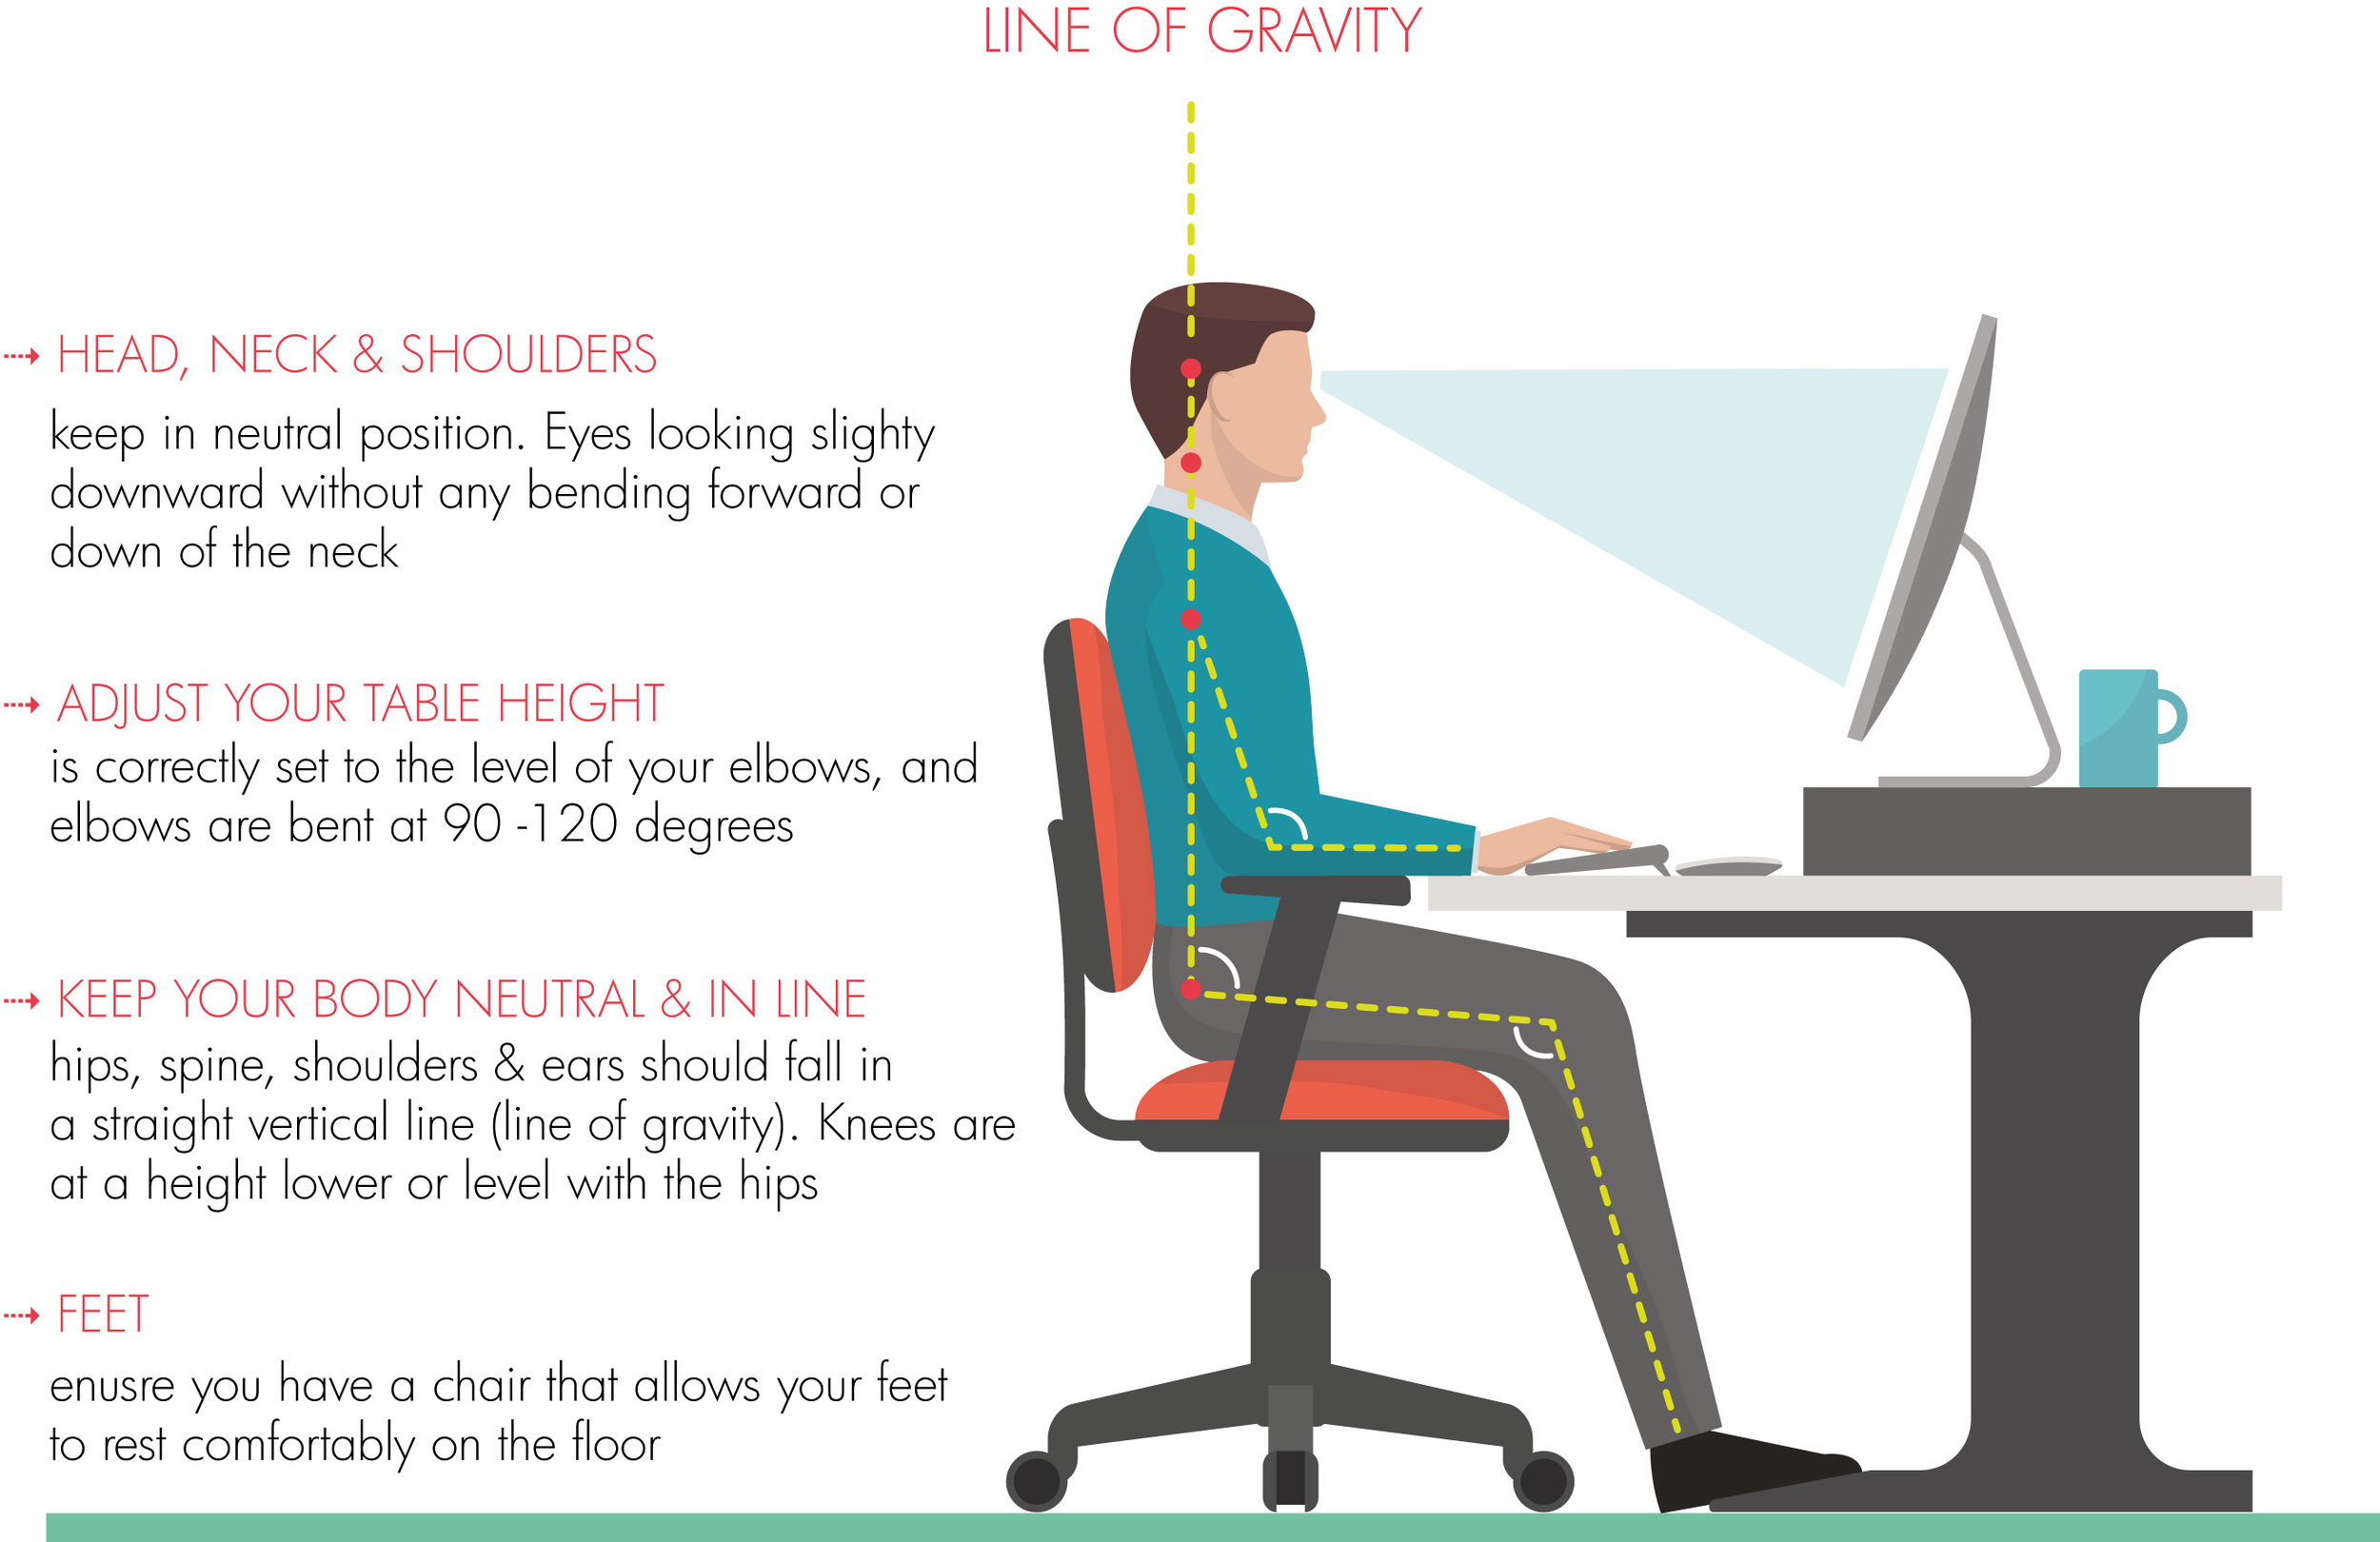 Standing Desk Tips - Check That You Maintain A Comfortable & Neutral Posture While Sitting